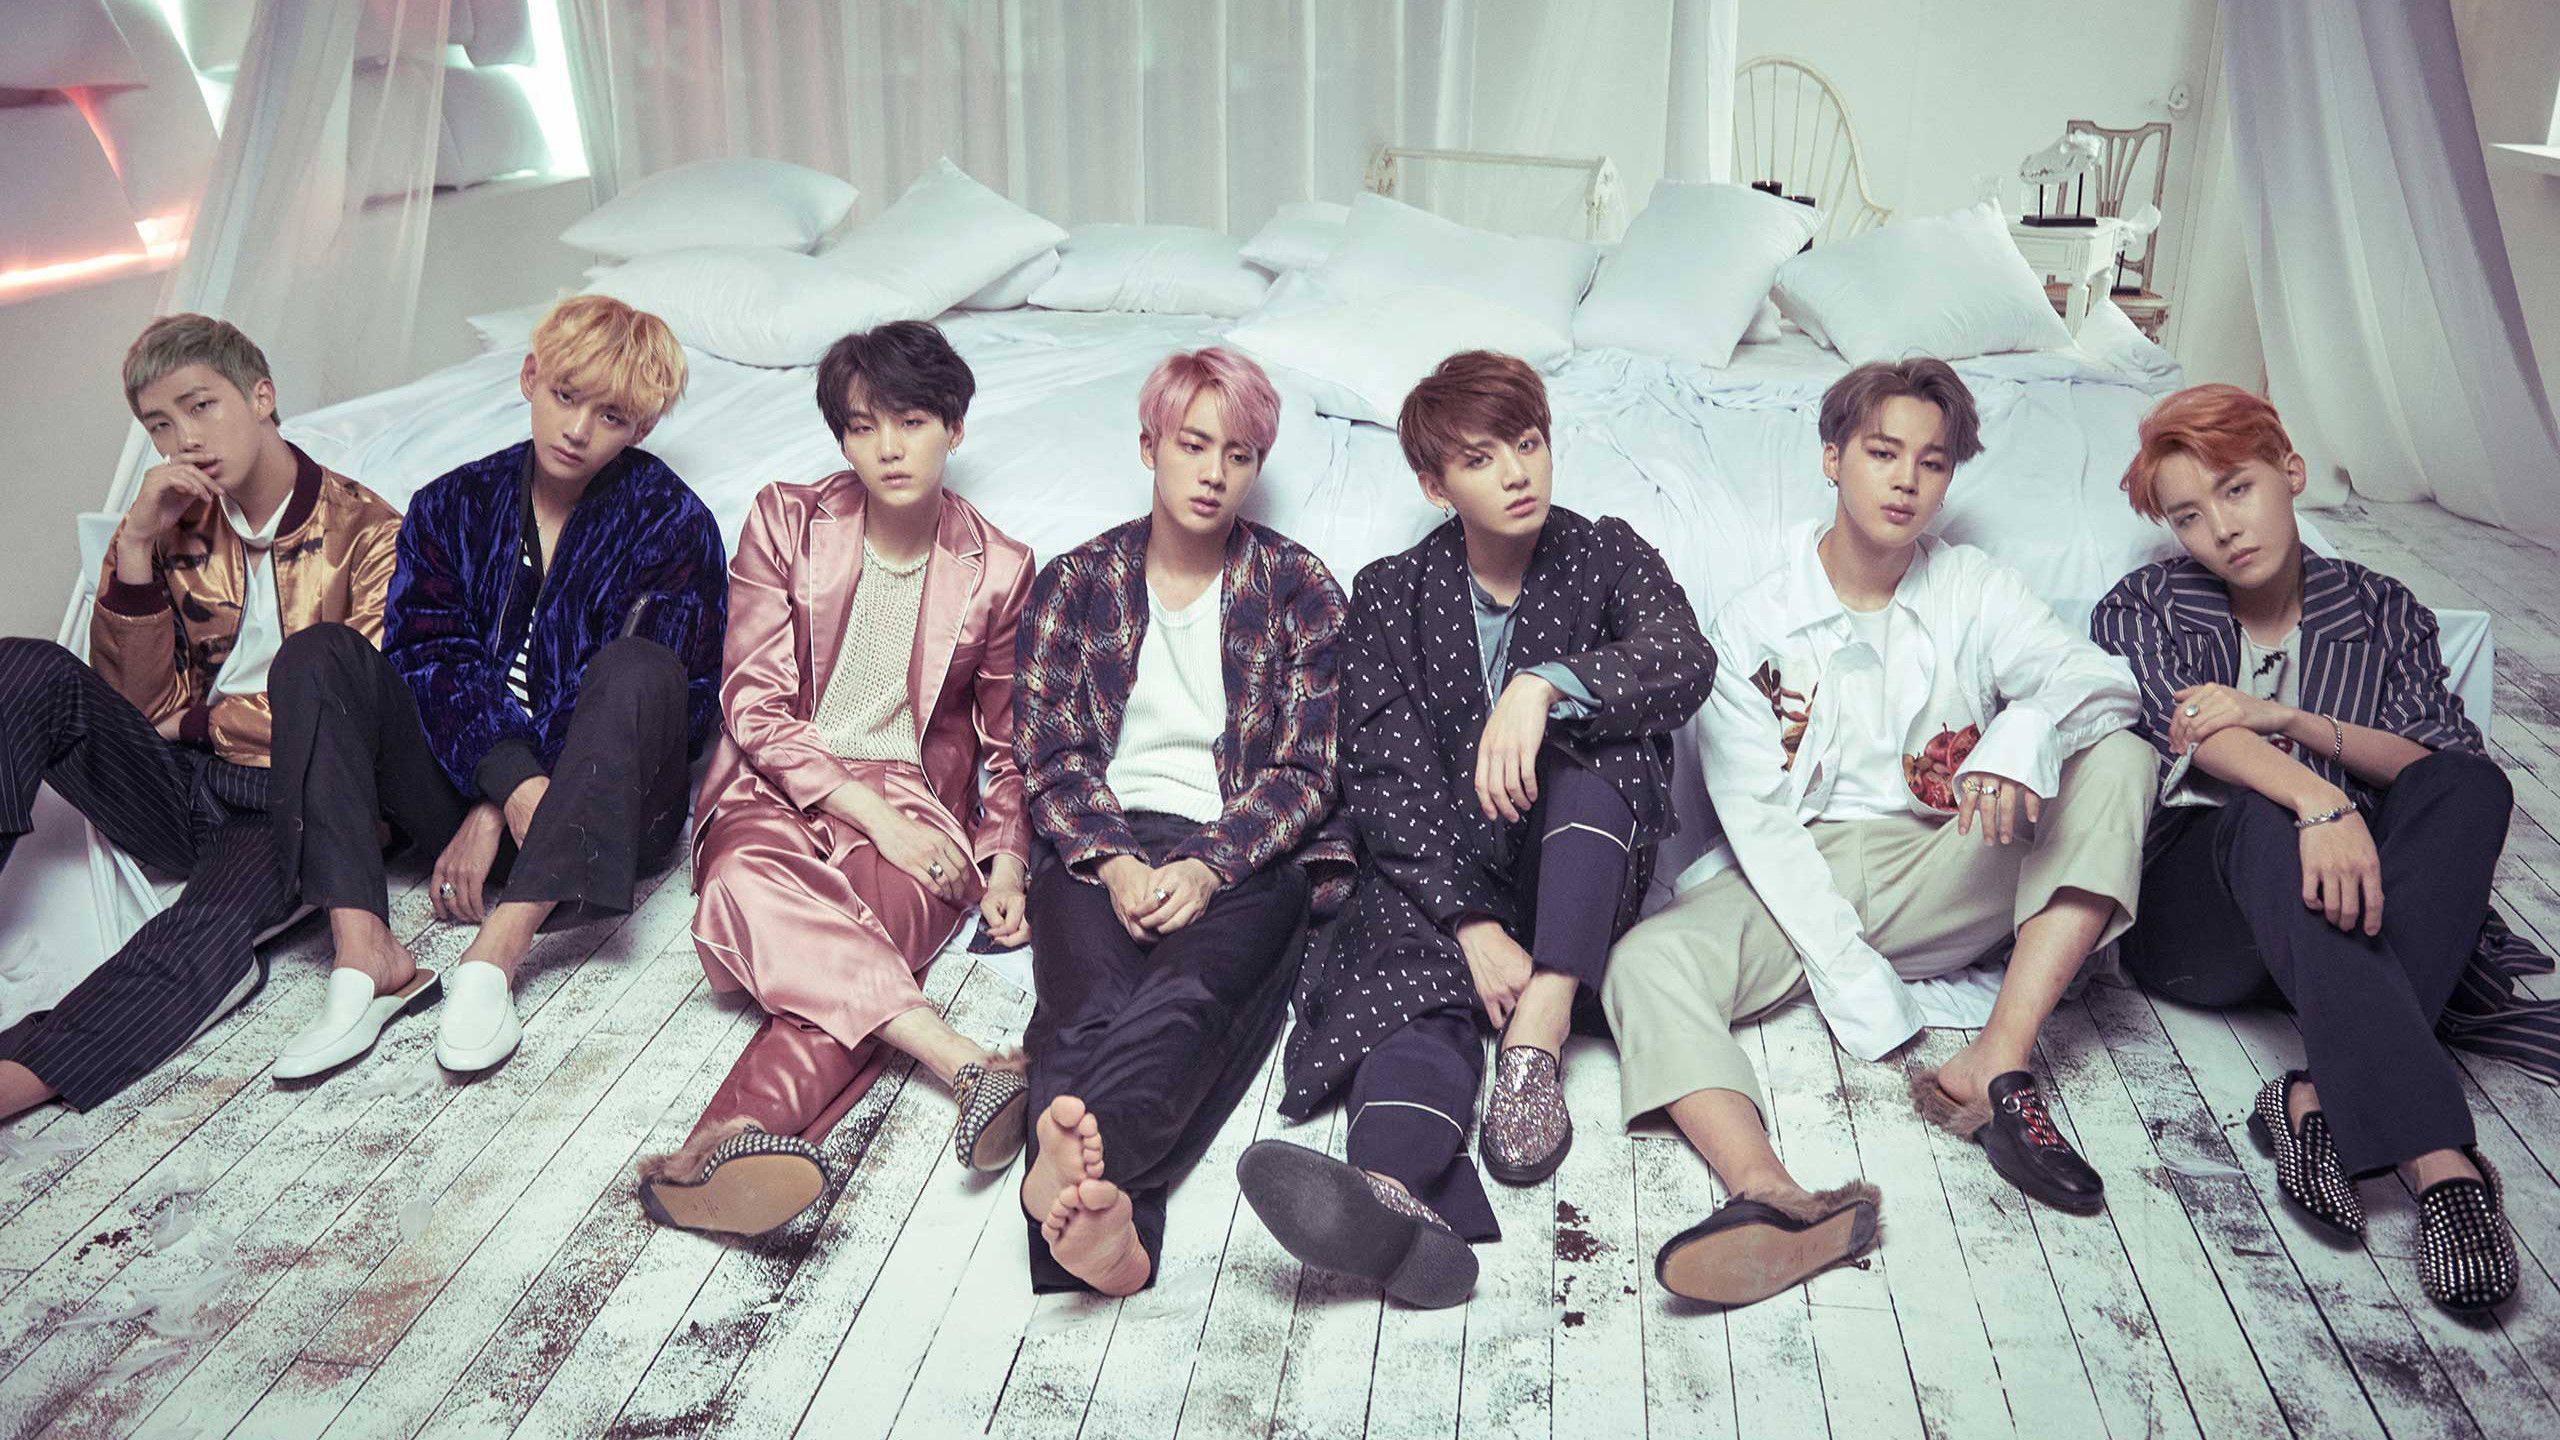 Bts Laptop Wallpapers Top Free Bts Laptop Backgrounds Wallpaperaccess